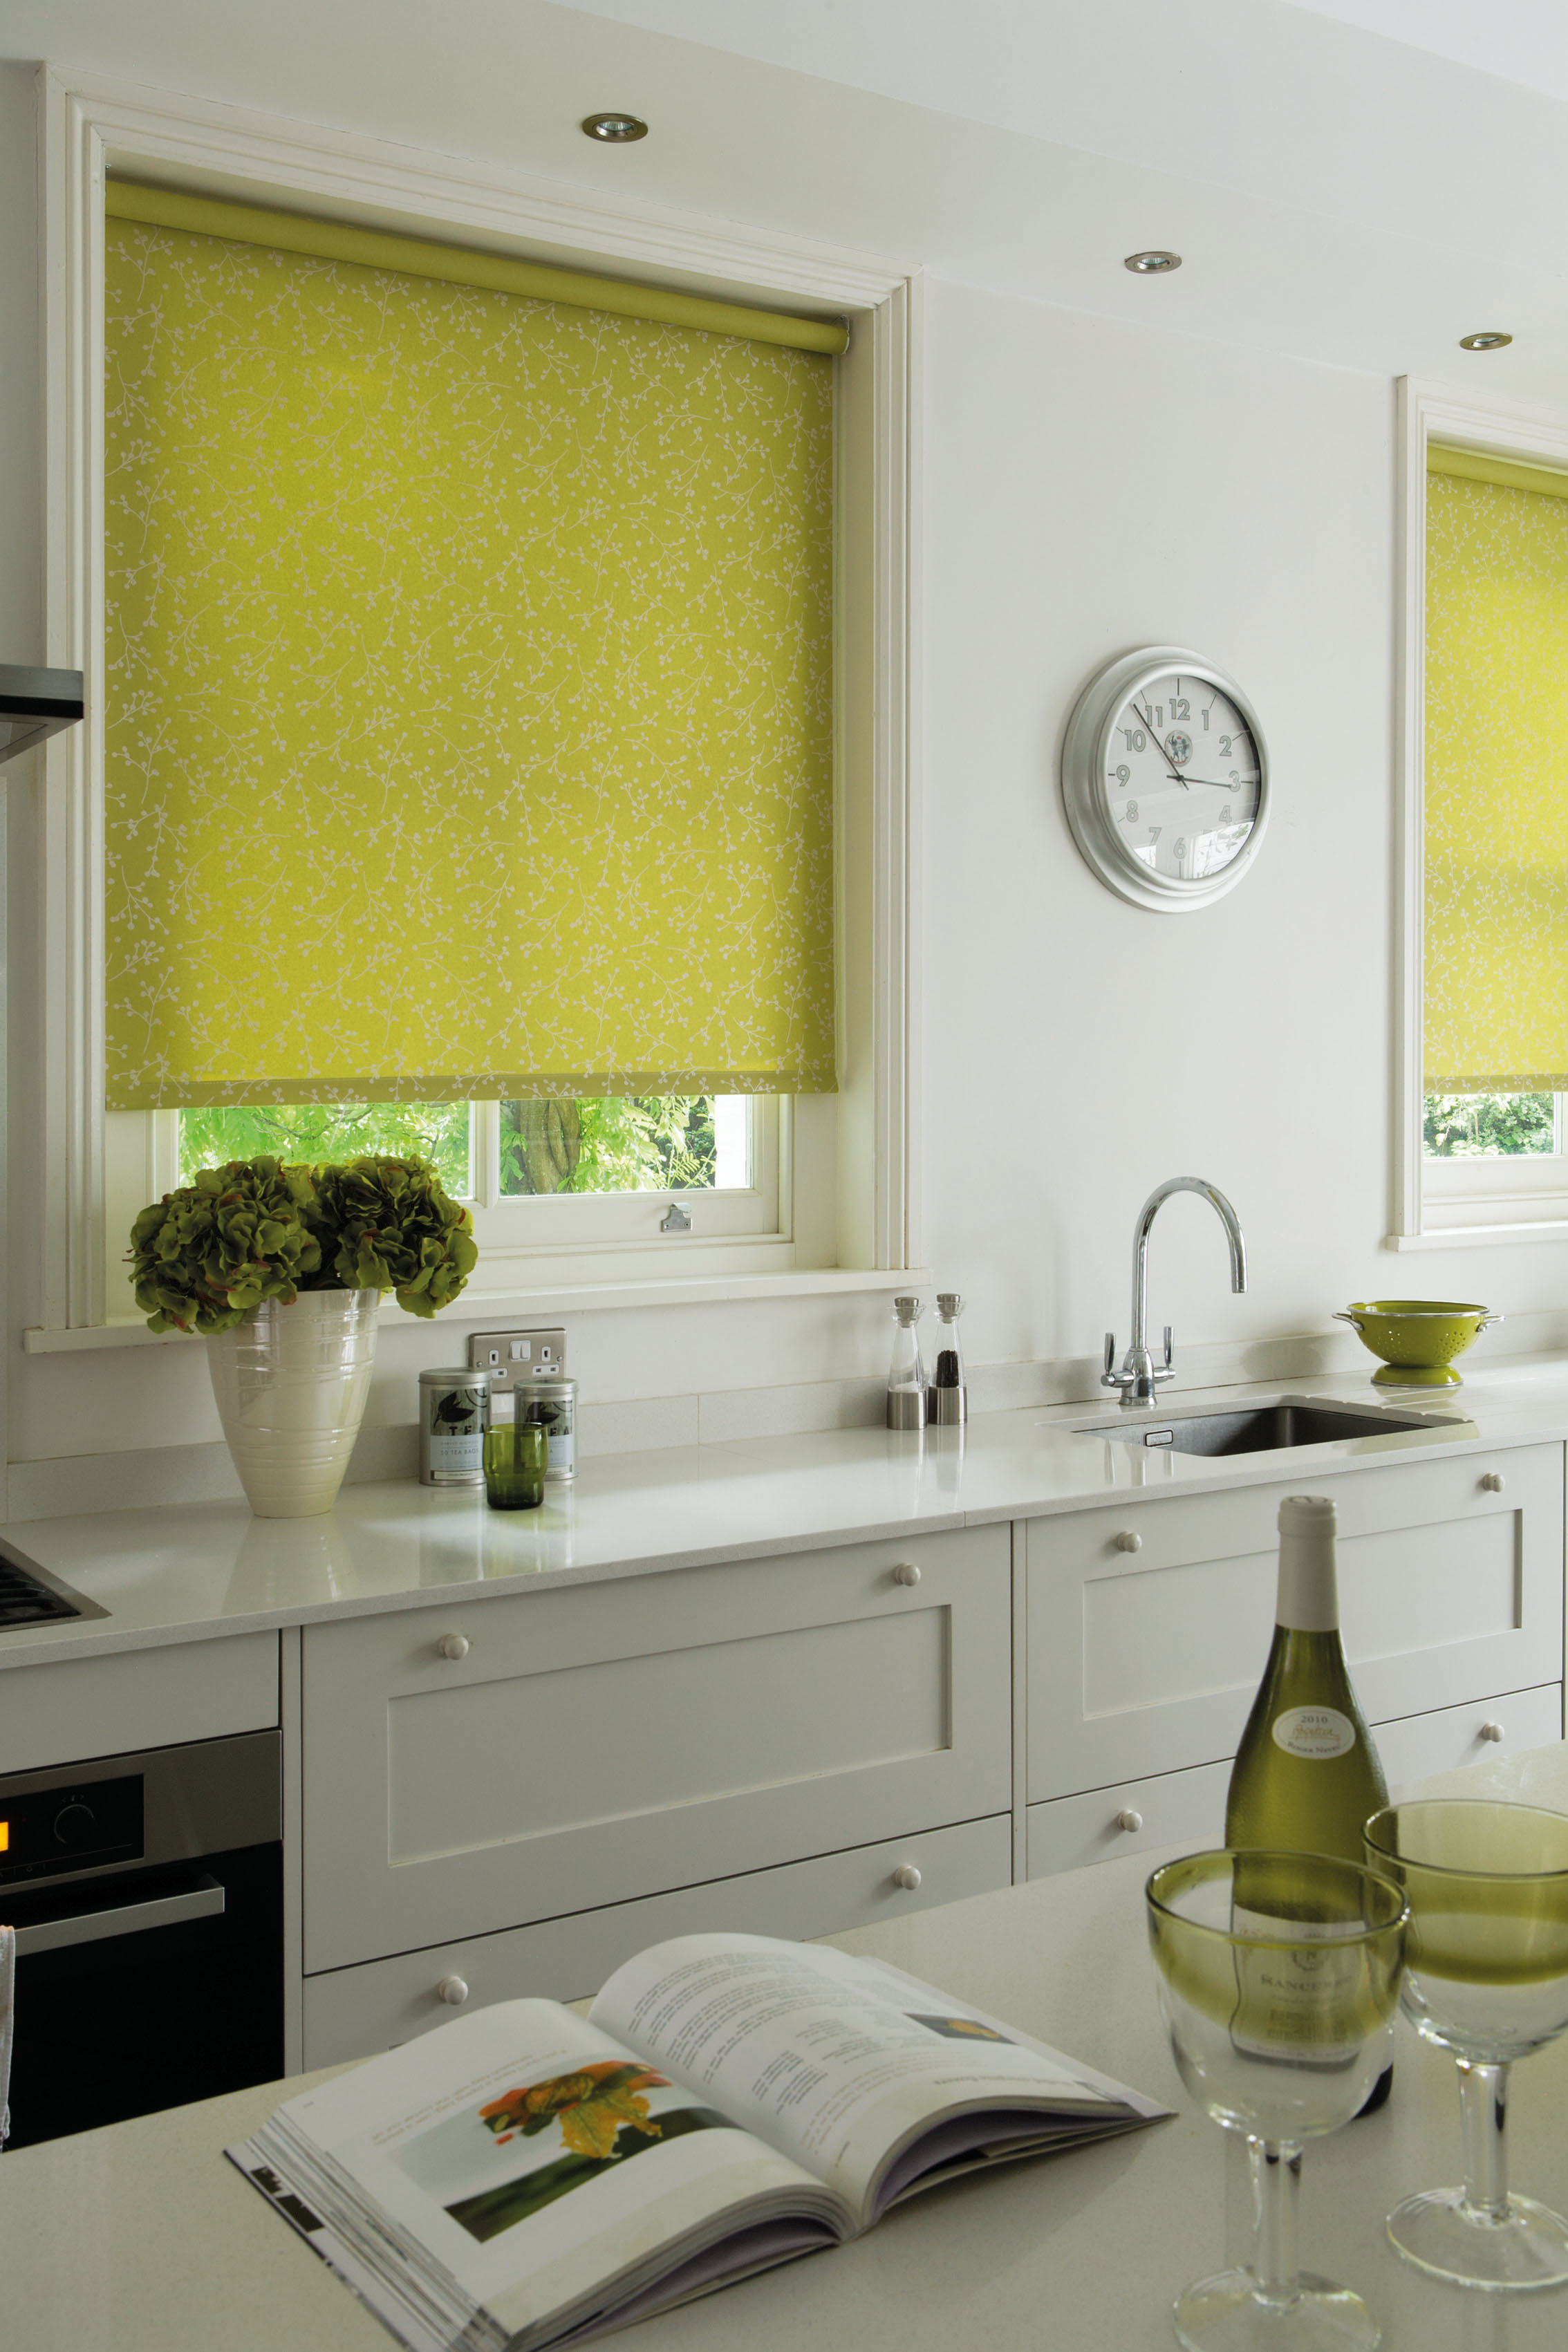 Exceptional Roller Blinds Leicester D C Blinds